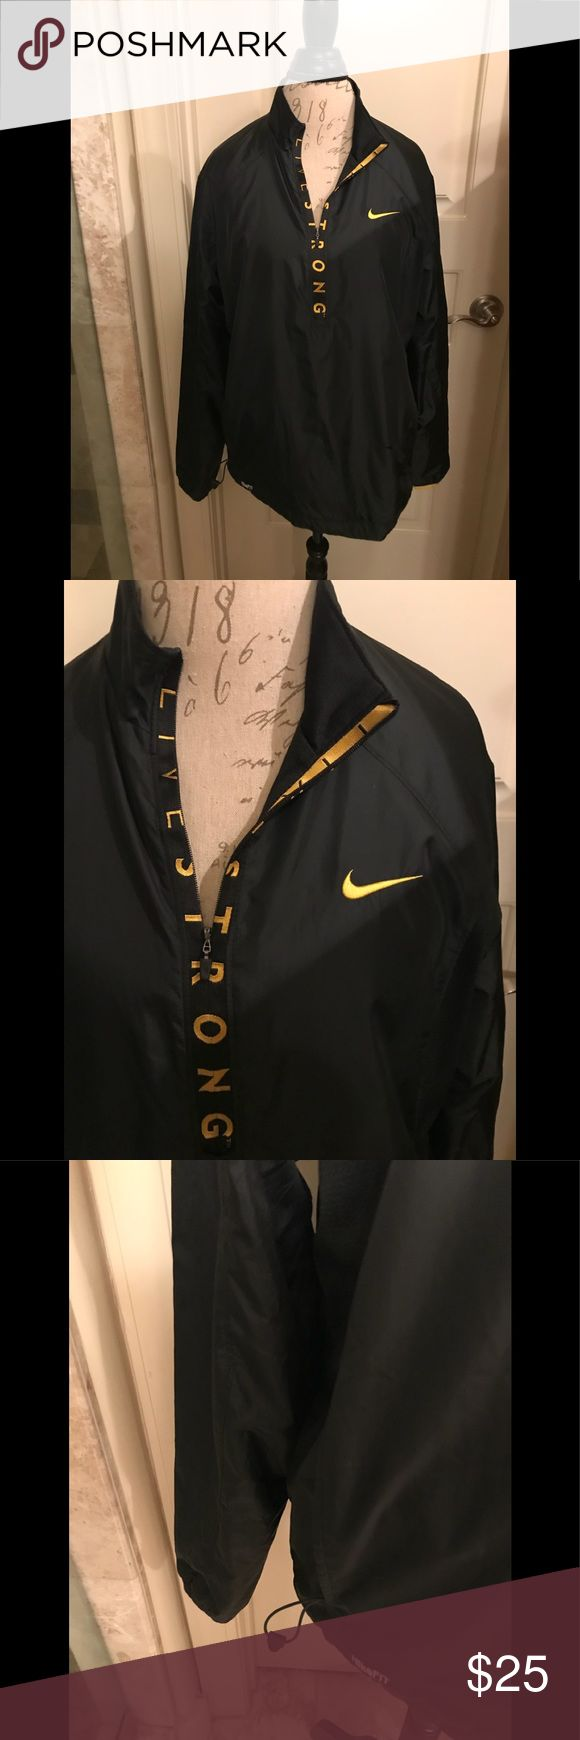 Nike Livestrong Pullover Windbreaker Nike Livestrong drifit pullover  zip up the front windbreaker. Excellent condition Nike Livestrong Jackets & Coats Windbreakers